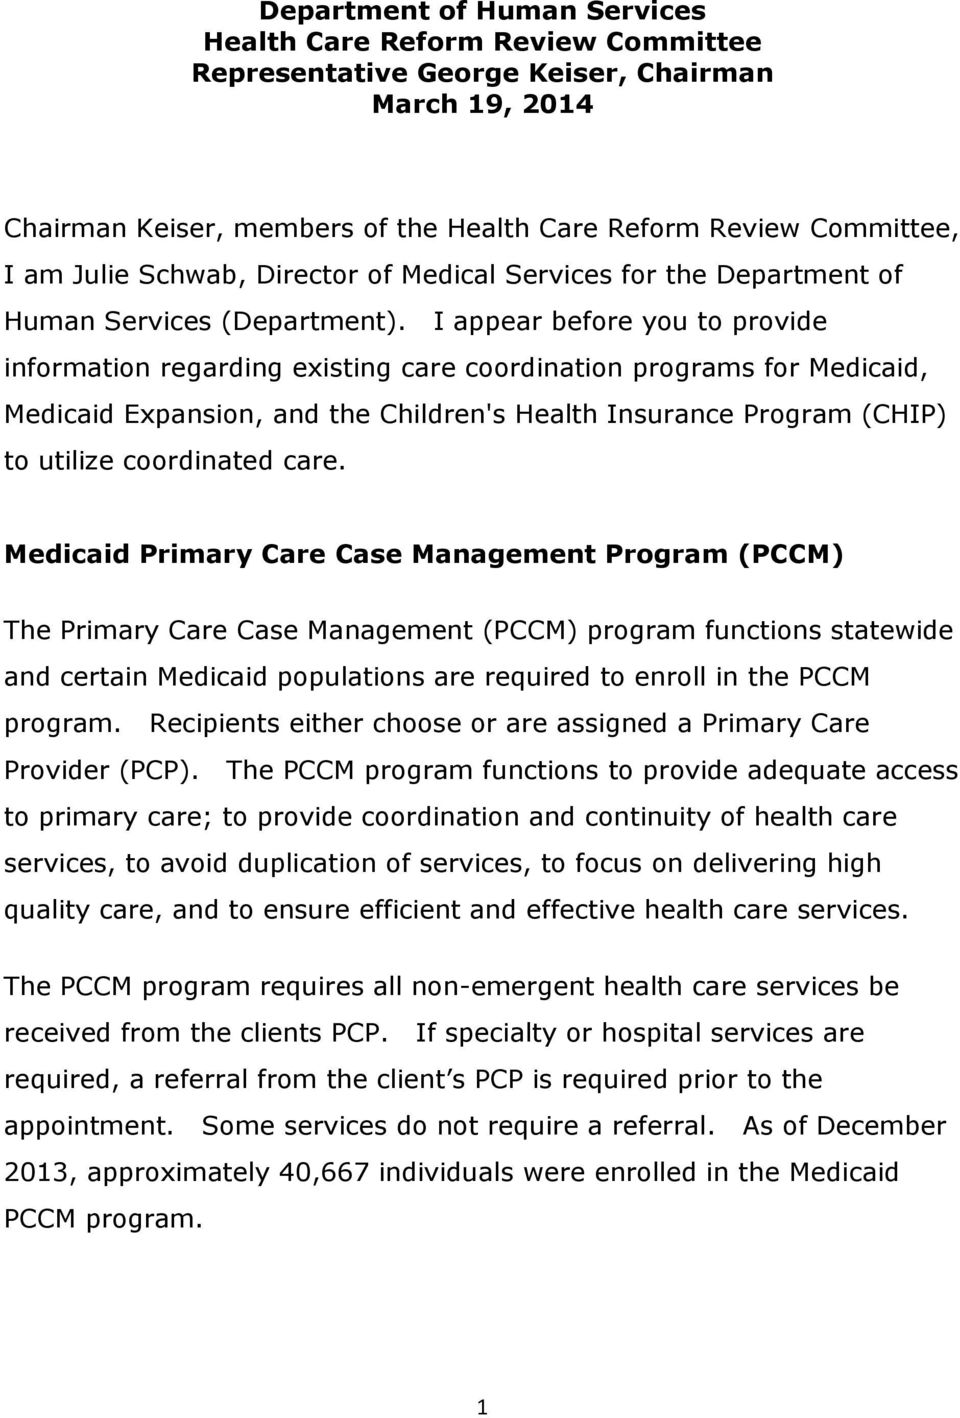 I appear before you to provide information regarding existing care coordination programs for Medicaid, Medicaid Expansion, and the Children's Health Insurance Program (CHIP) to utilize coordinated